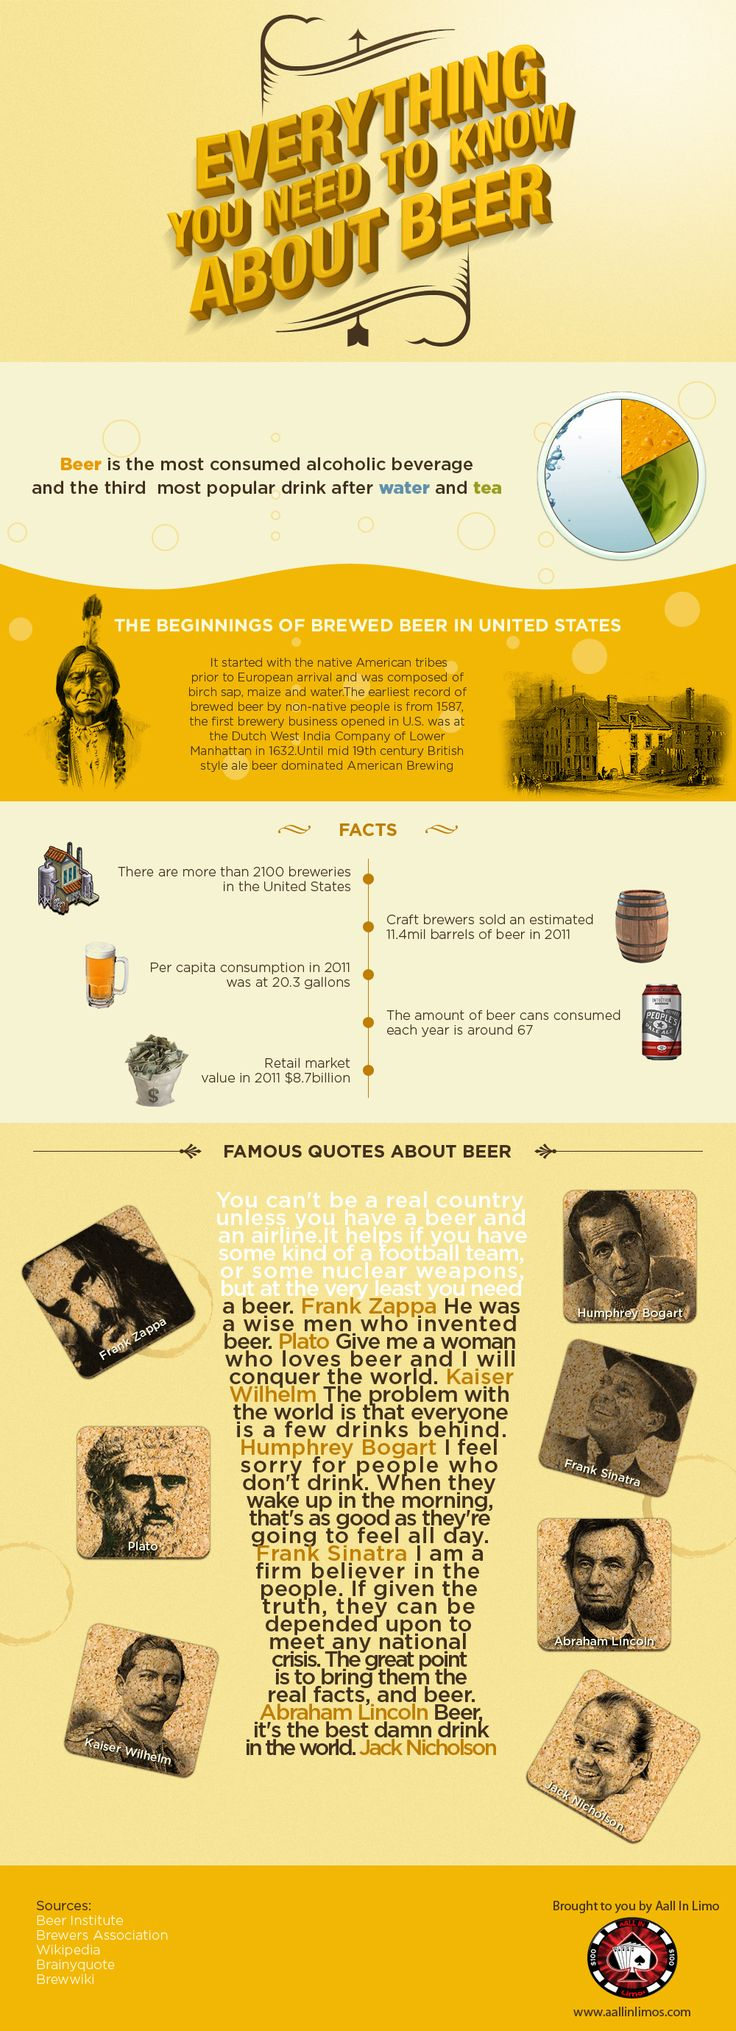 A selection of famous #beer #quotes - #infographic - http://www.finedininglovers.com/blog/food-drinks/famous-beer-quotes/